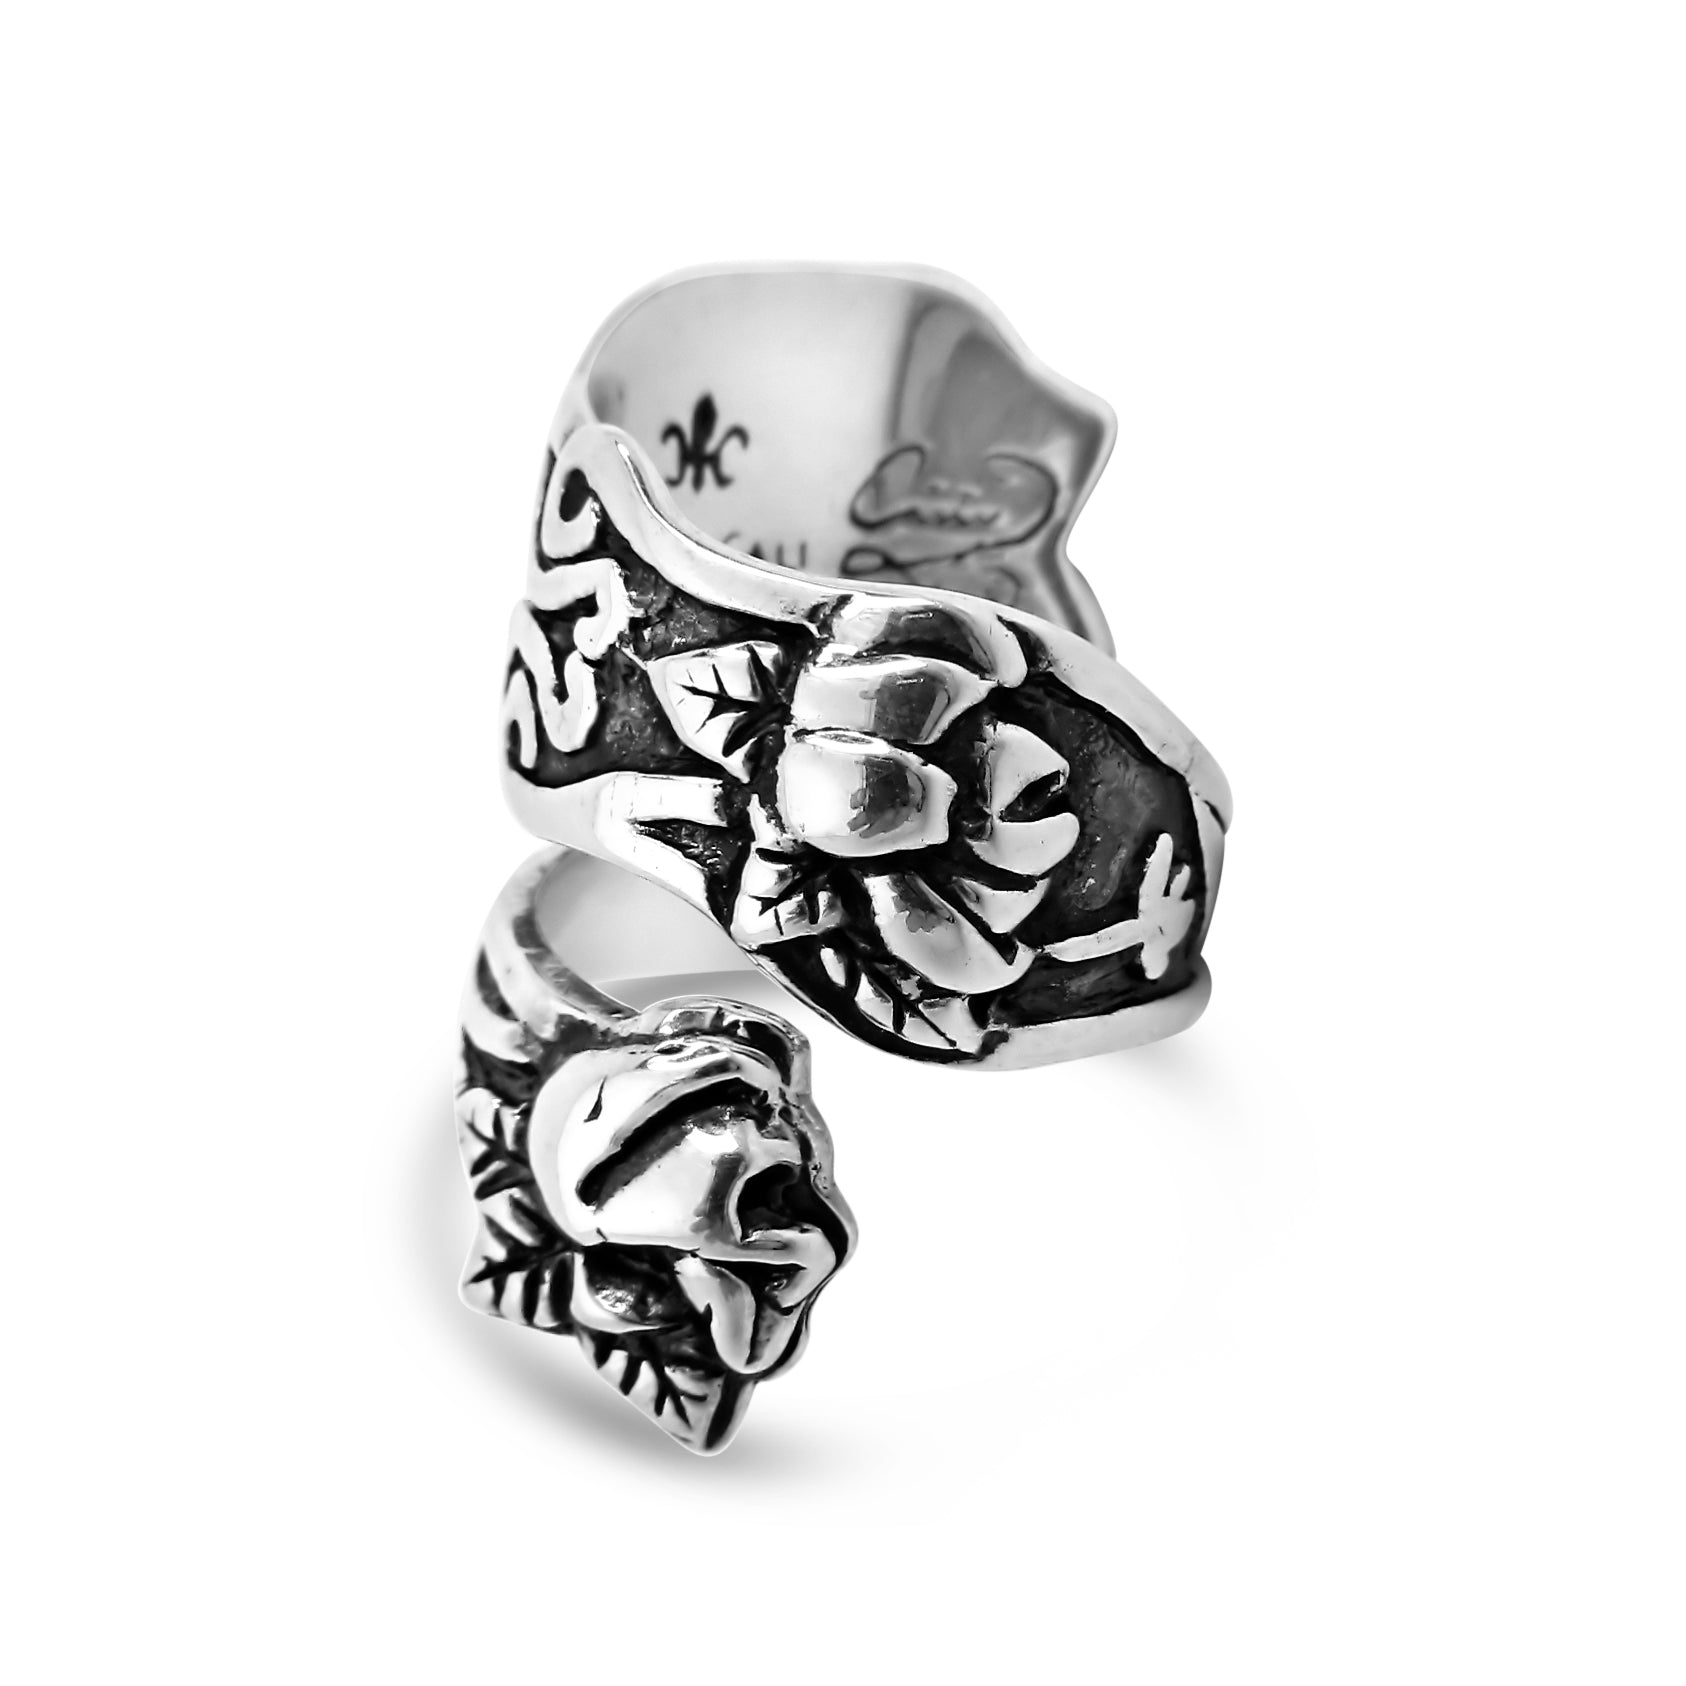 Magnolia Spoon Ring